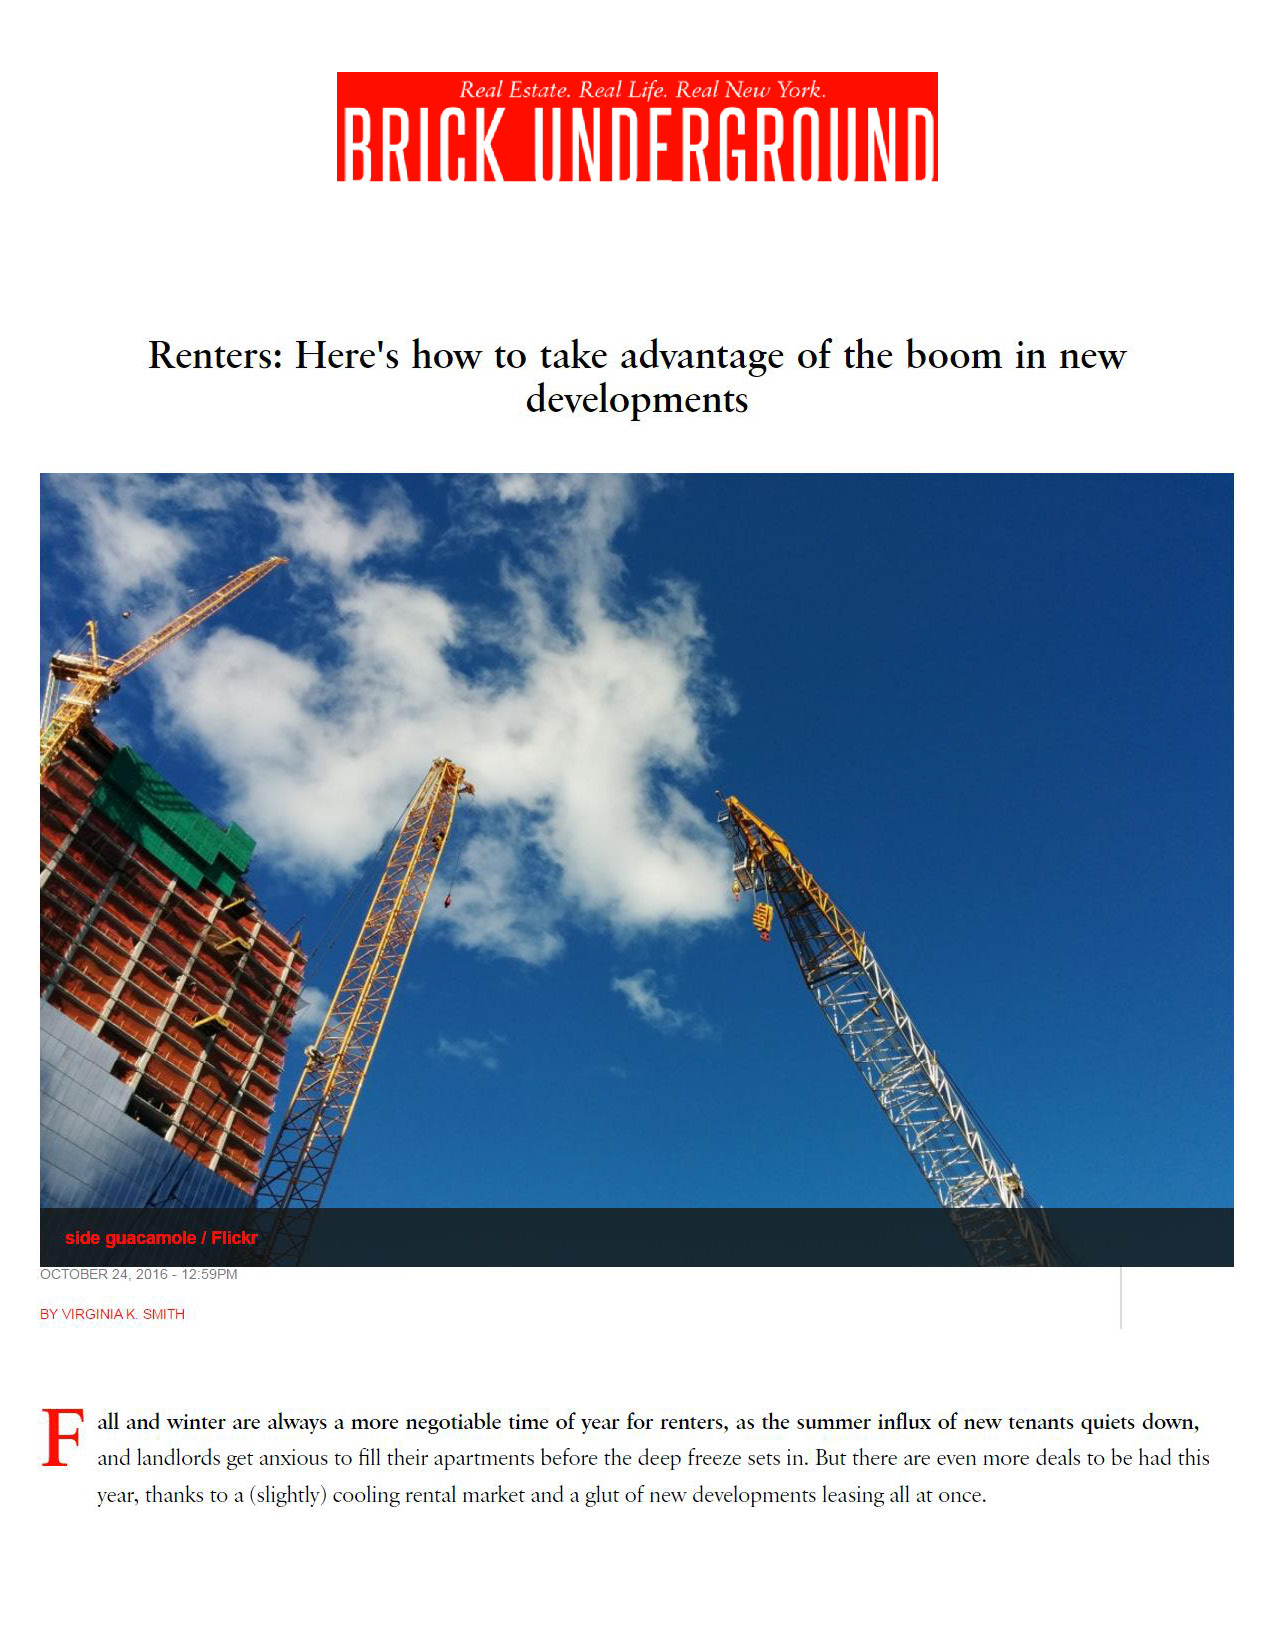 brickunderground-renters-heres-how-to-take-advantage-of-the-boom-in-n-1_page_1